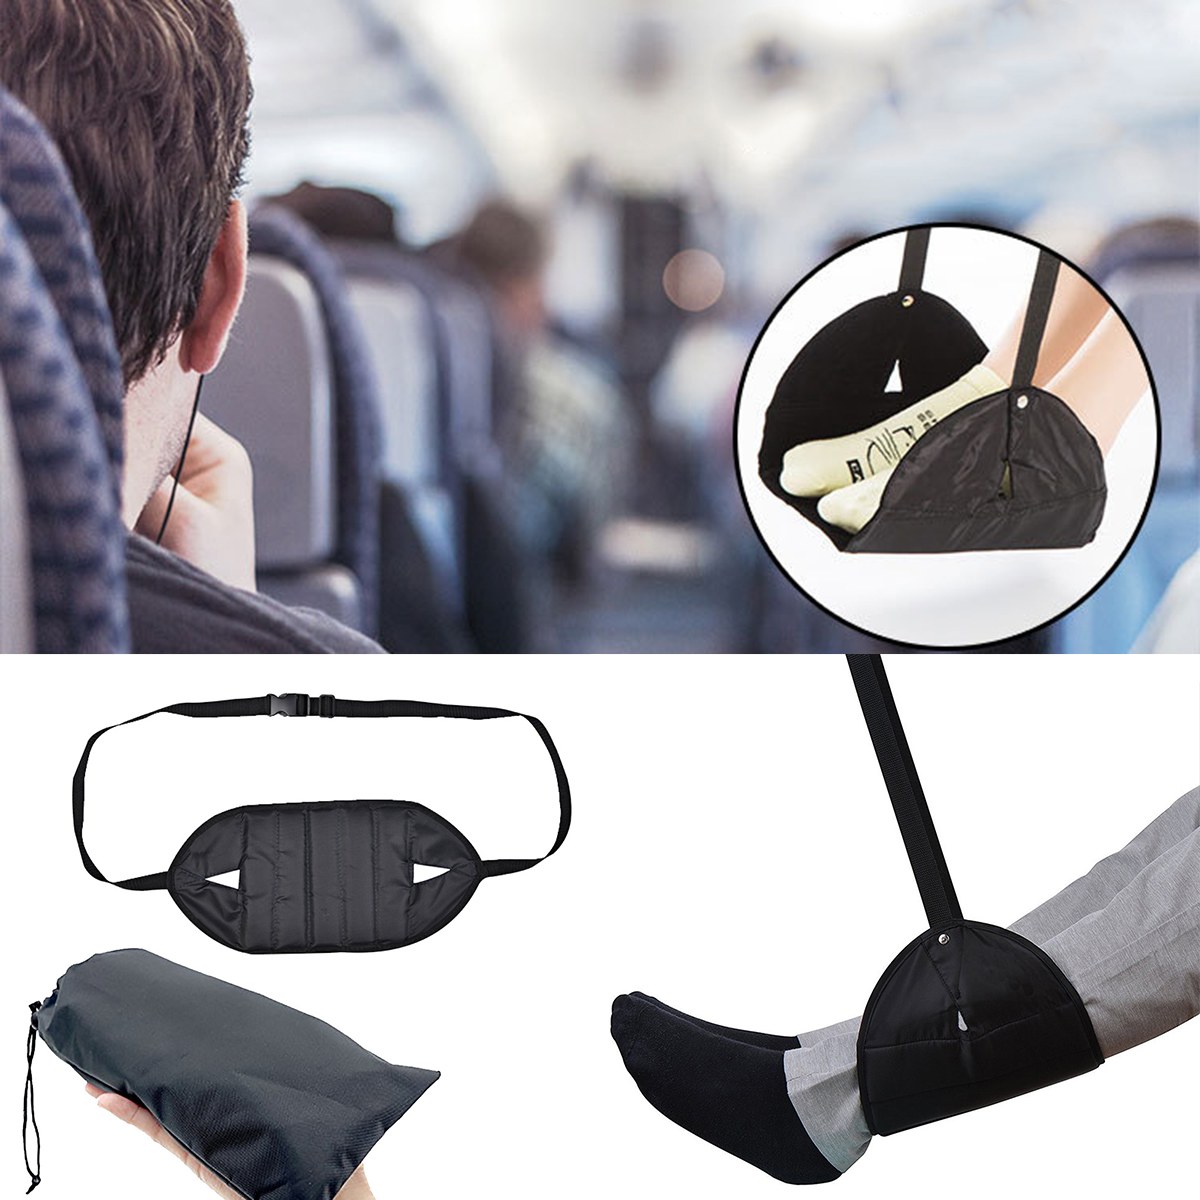 Portable Travel Foot Rest Lightweight Airplane Footrest quick release buckle relieve tiredness  Travel AccessoriesPortable Travel Foot Rest Lightweight Airplane Footrest quick release buckle relieve tiredness  Travel Accessories